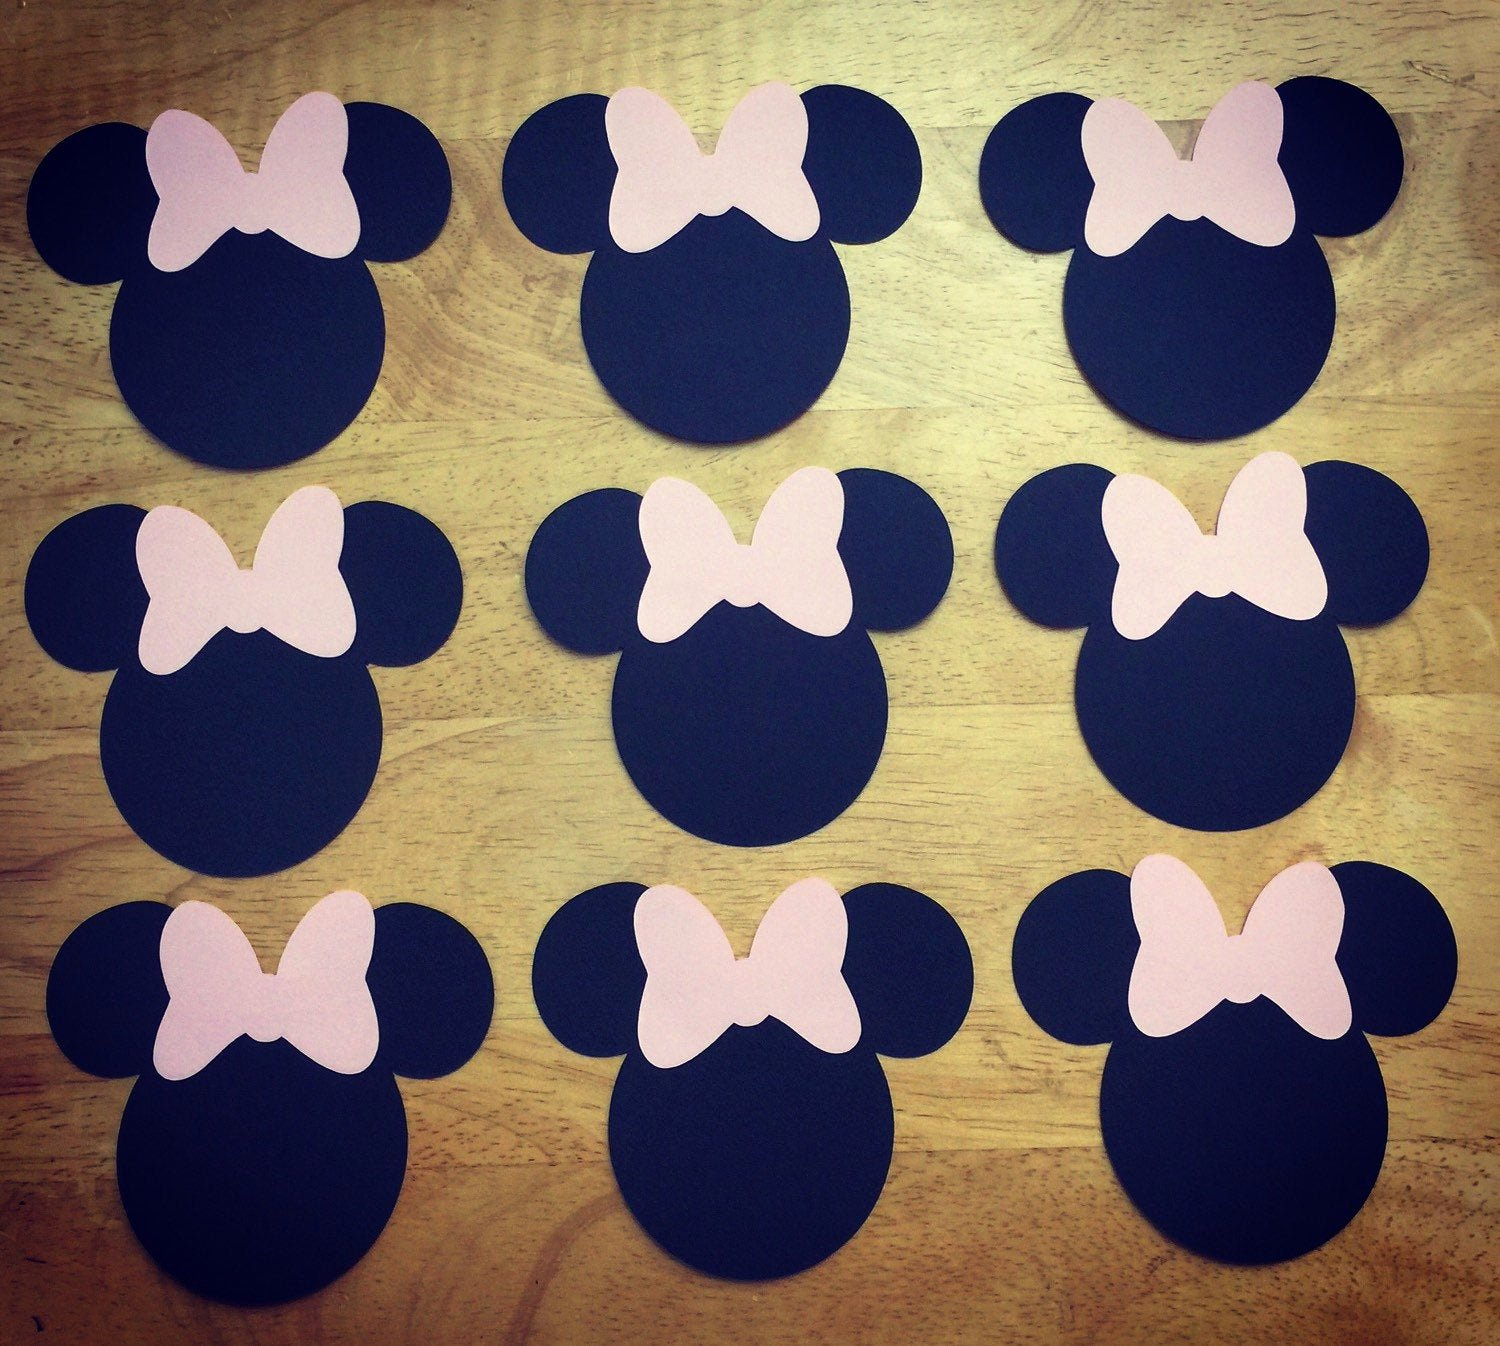 Minnie Mouse Bow Cut Out Inspirational Minnie Mouse Cut Outs with Bows Various Sizes and Colors